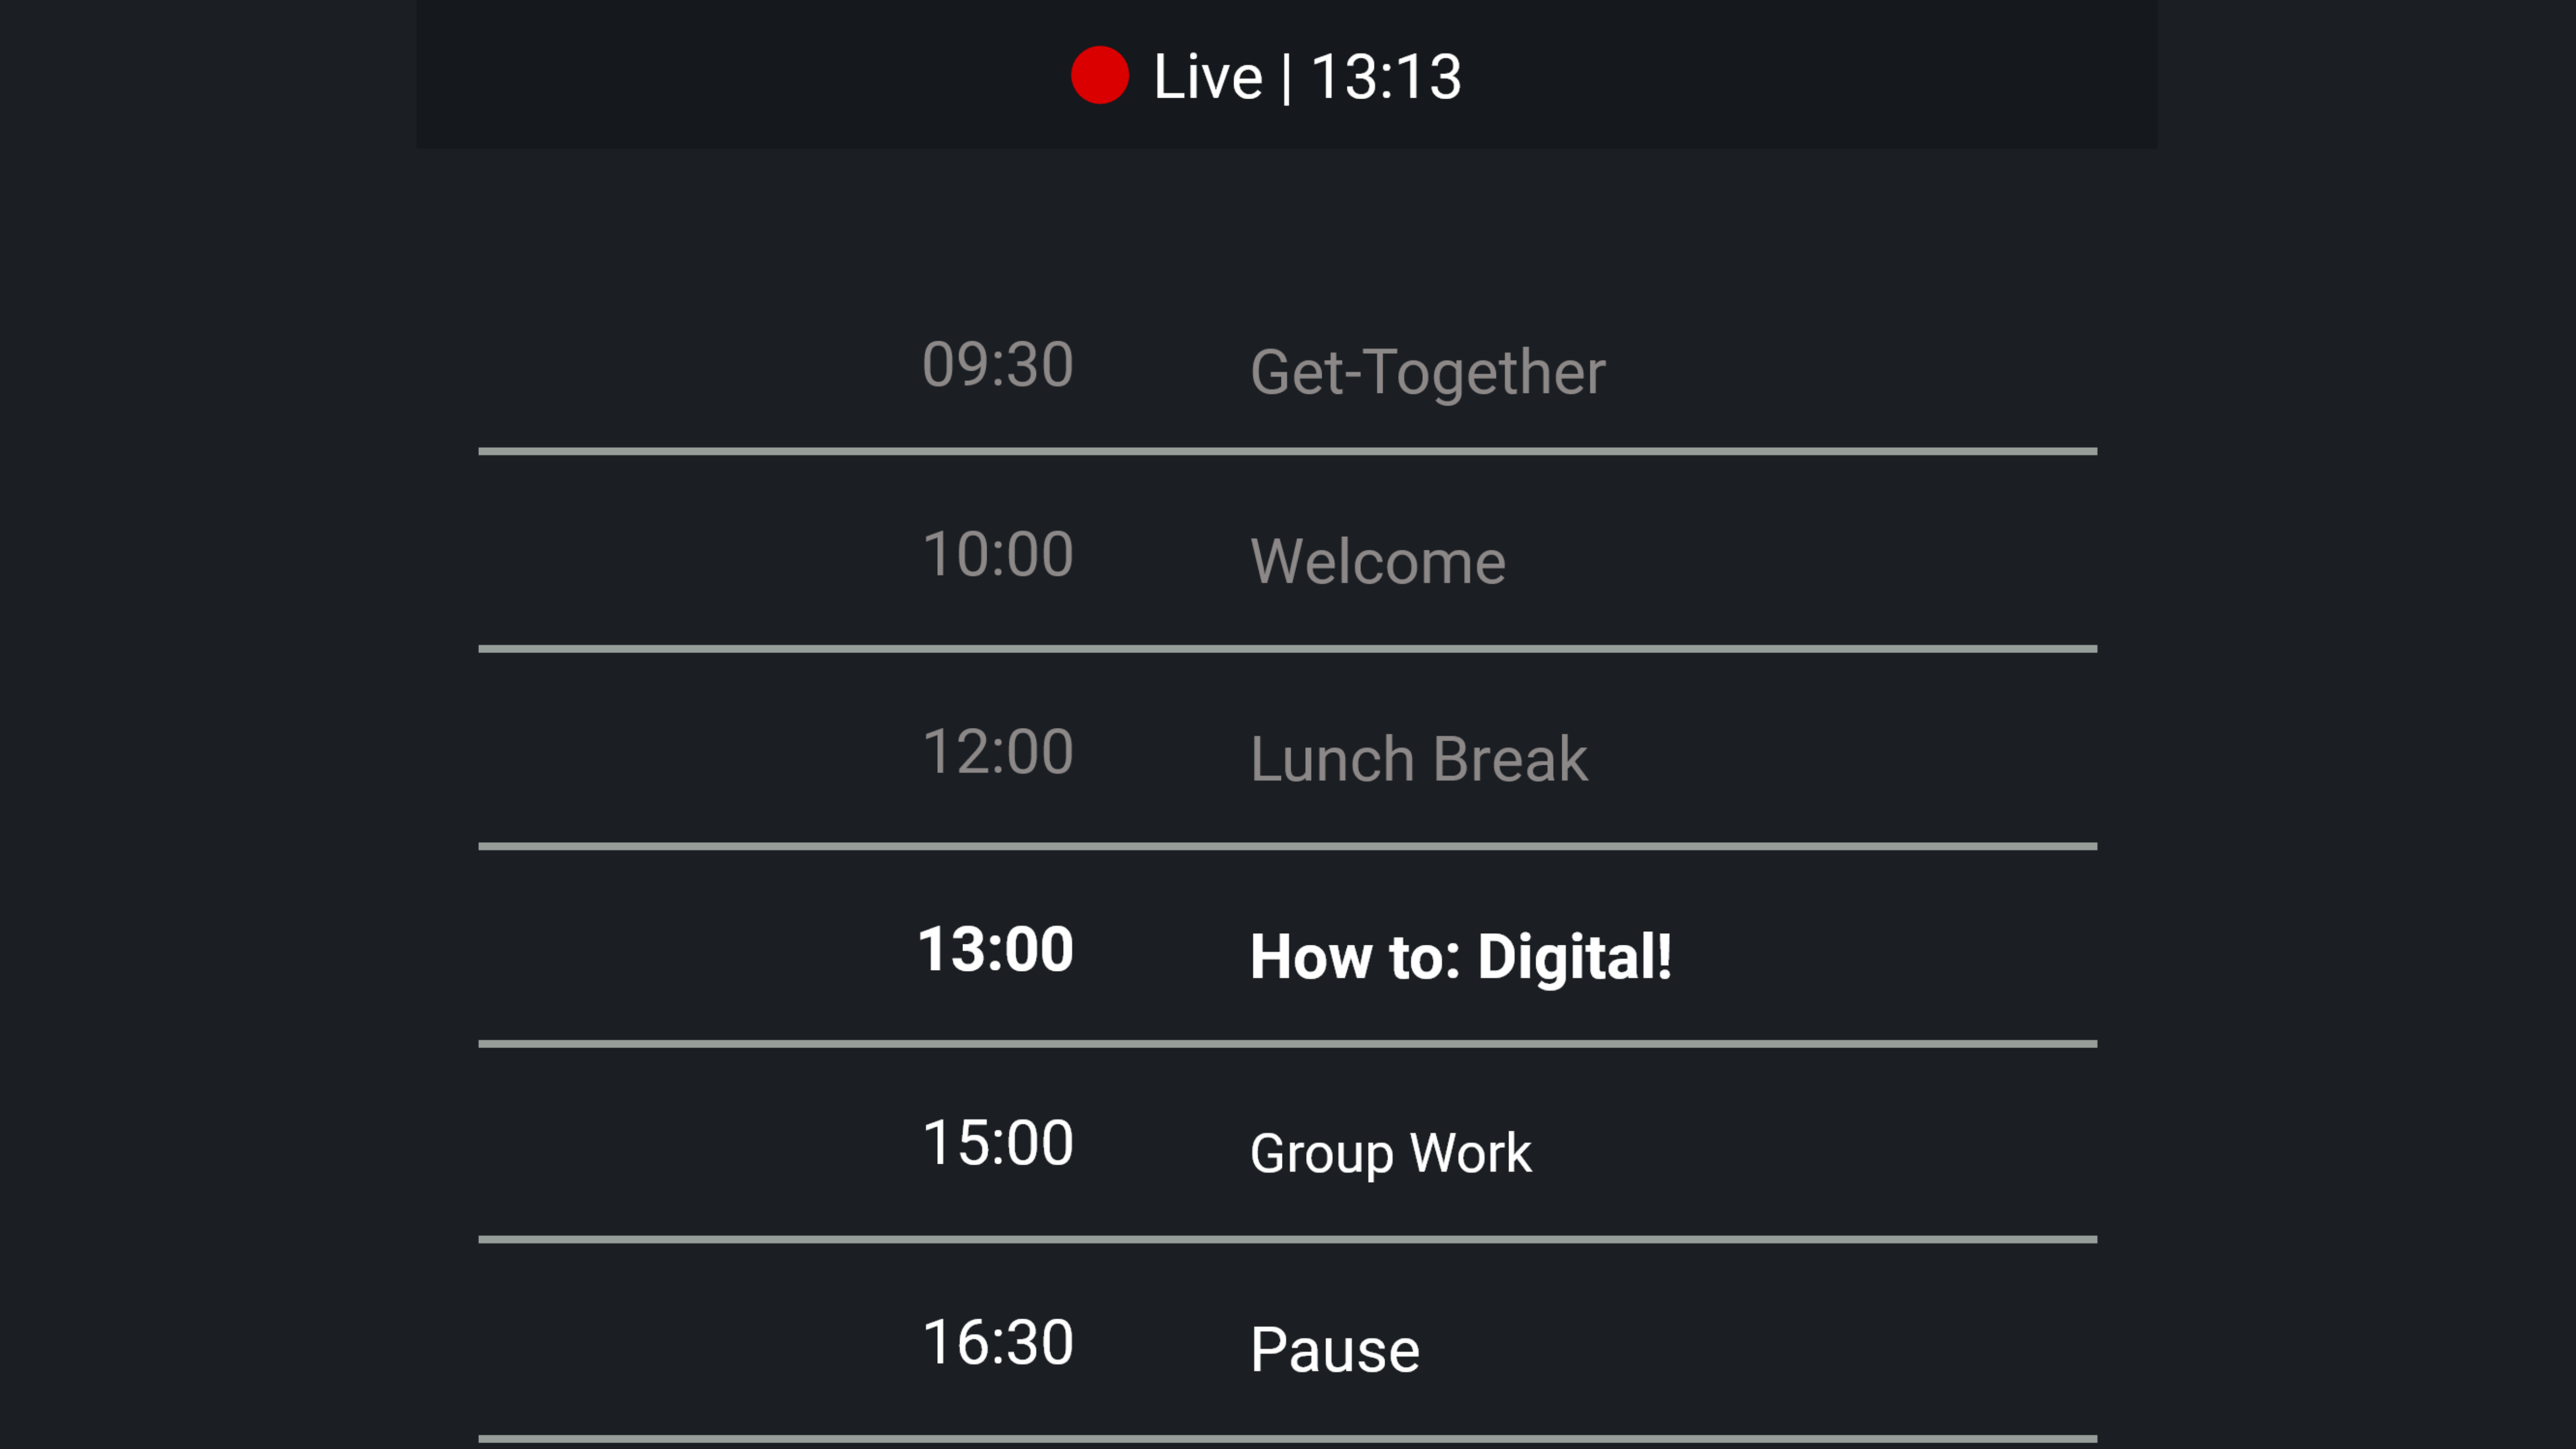 agenda overview, timetable, ordered